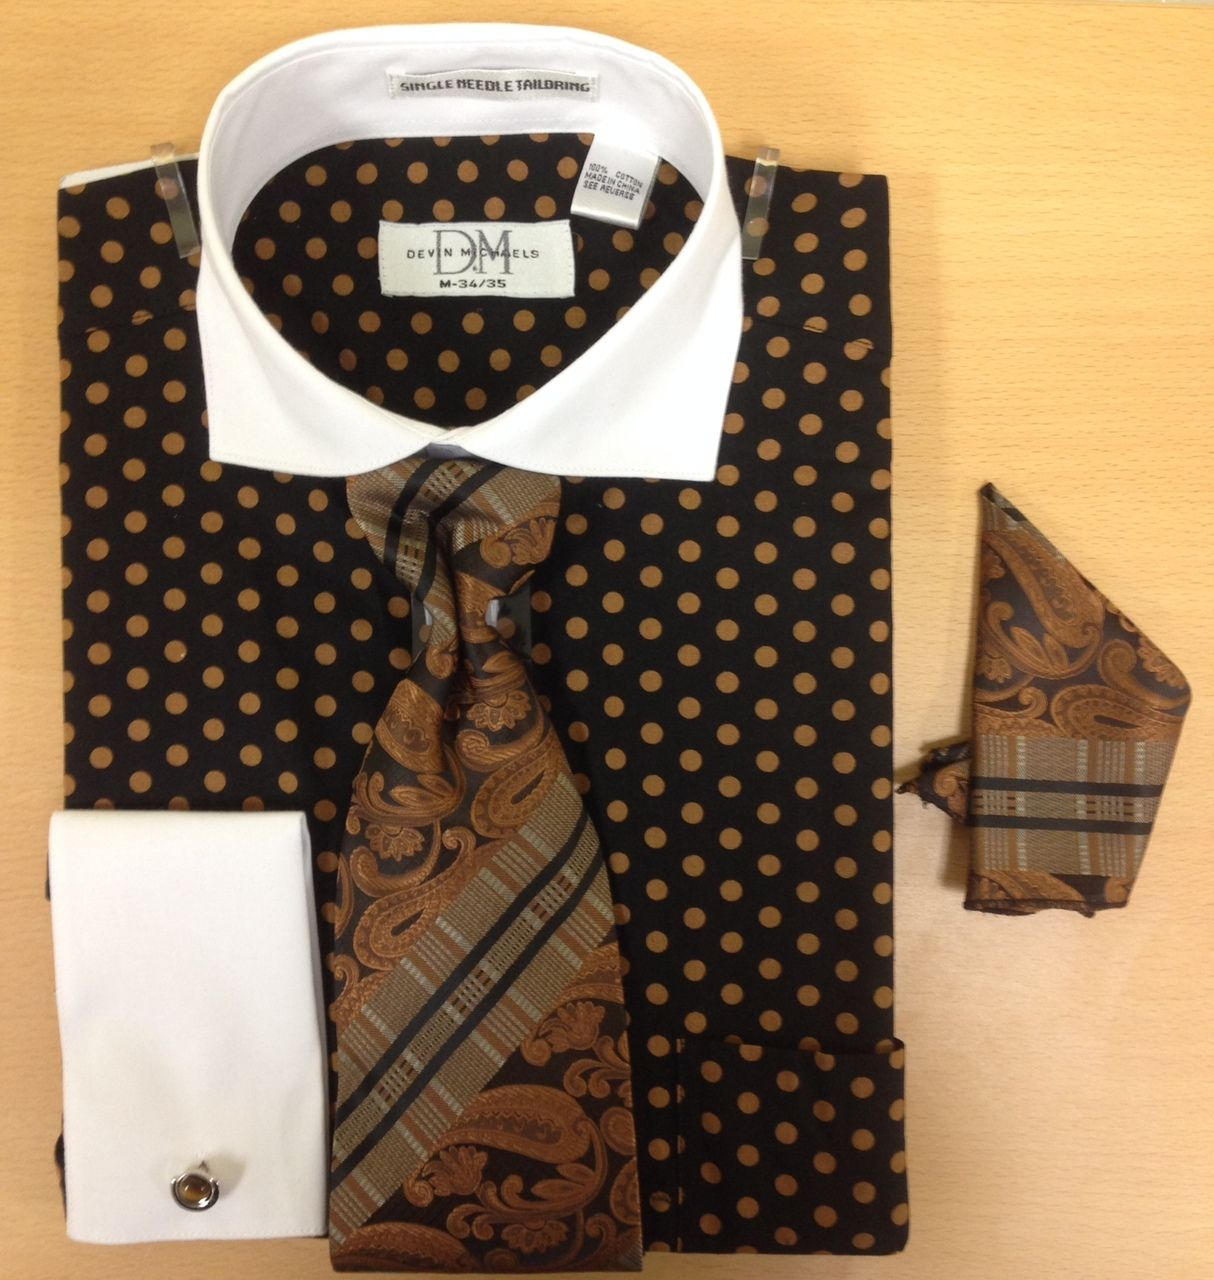 Men's Fashion Polka Dot Pattern Cufflink Dress Shirt Set - Black and Brown